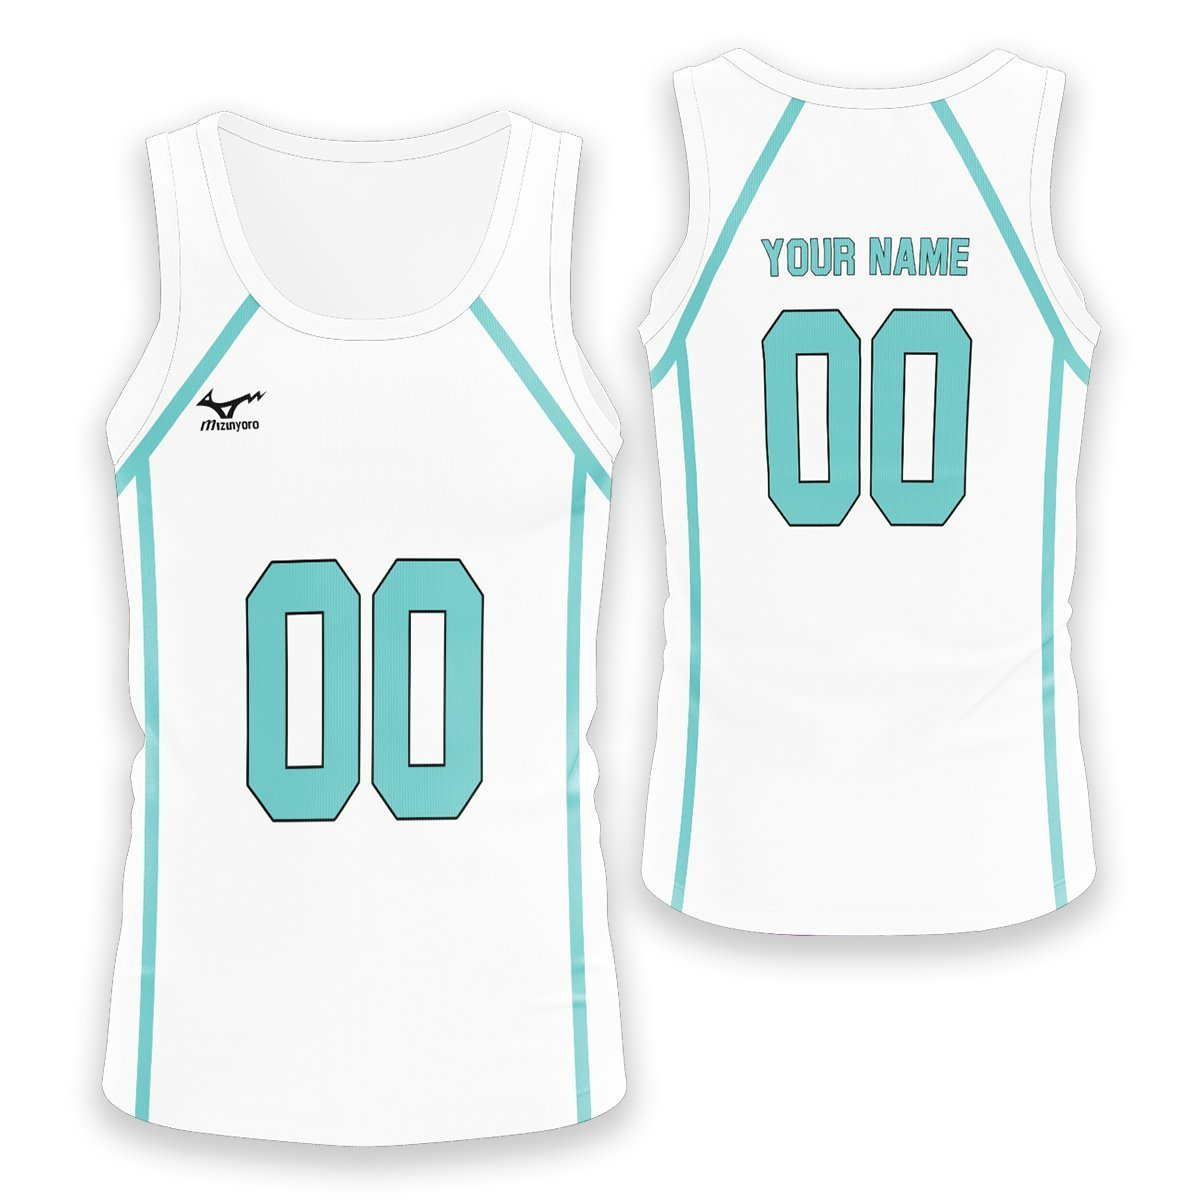 Personalized Team Aoba Johsai Unisex Tank Tops FDM3107 S Official Anime Swimsuit Merch